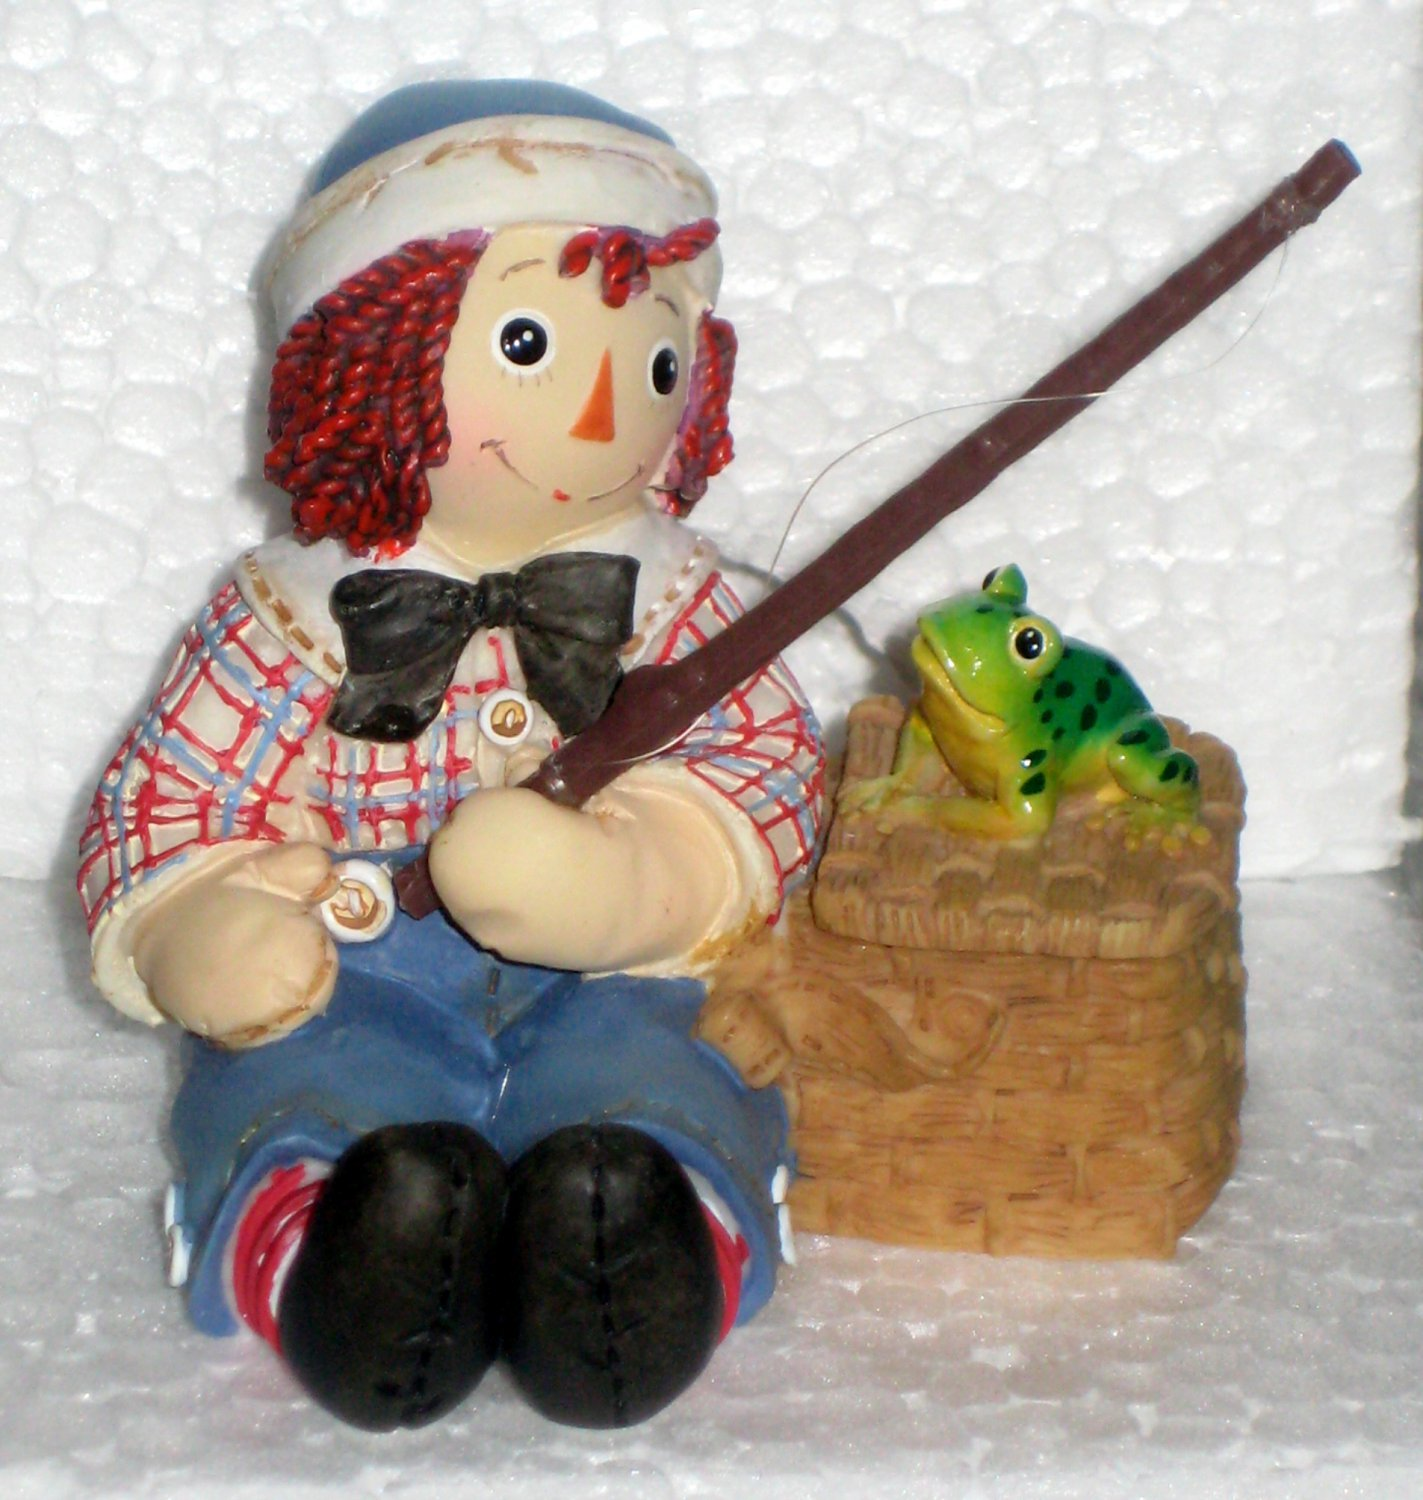 677809 Joy and Love Are Truly Catching Raggedy Ann & Andy Enesco Figurine Fishing NIB